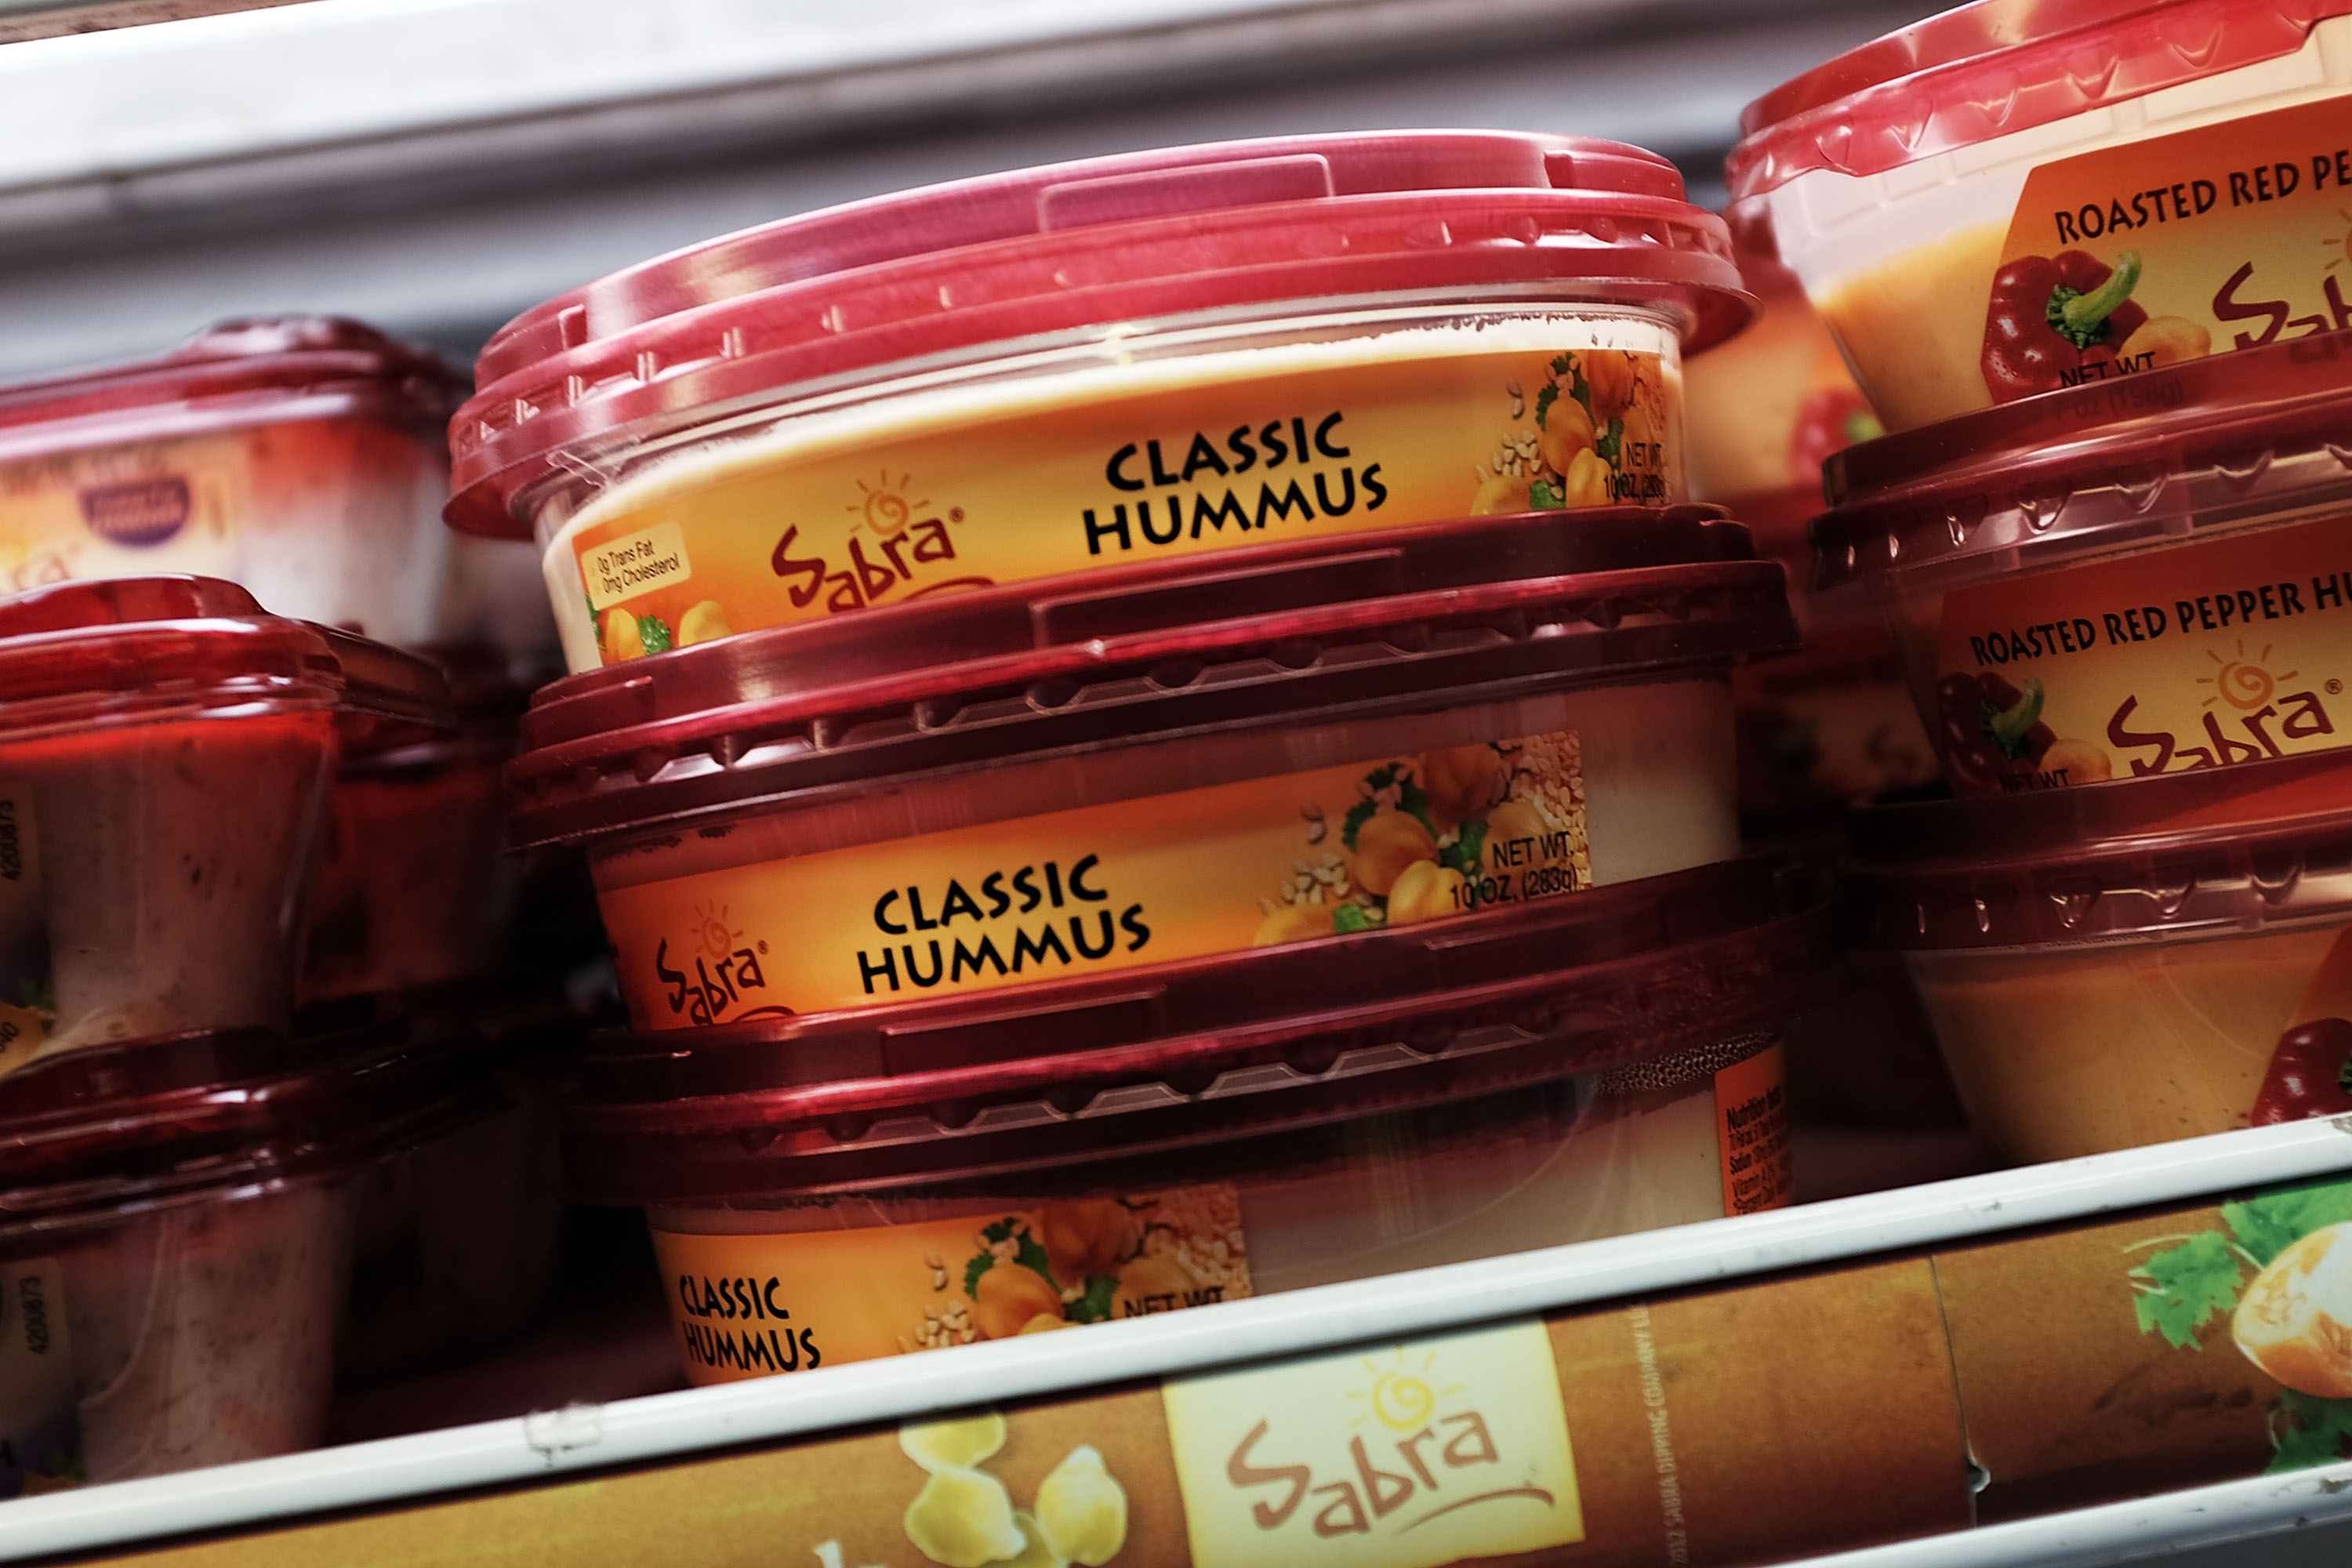 Cases of Sabra Classic Hummus are viewed on the shelf of a grocery store on April 9, 2015 in New York City.